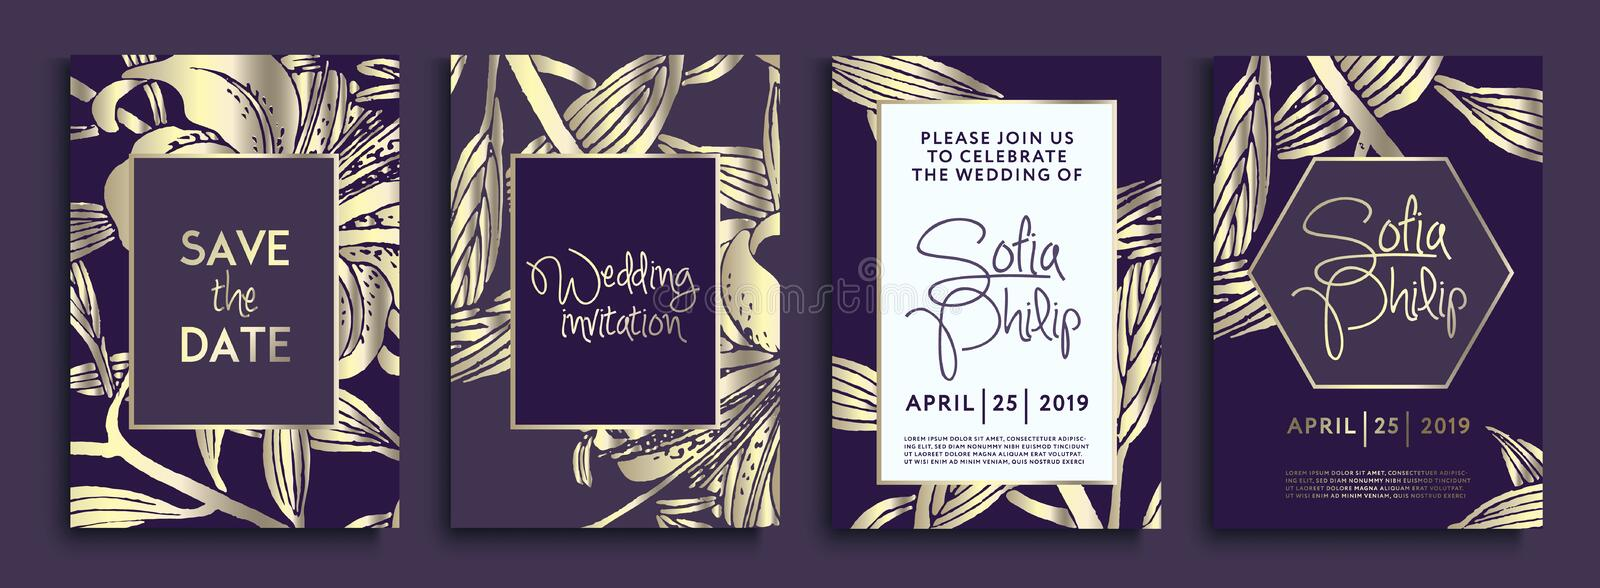 Wedding invitation with gold flowers and leaves on dark texture. luxury gold backgrounds, artistic covers design, colorful texture stock illustration